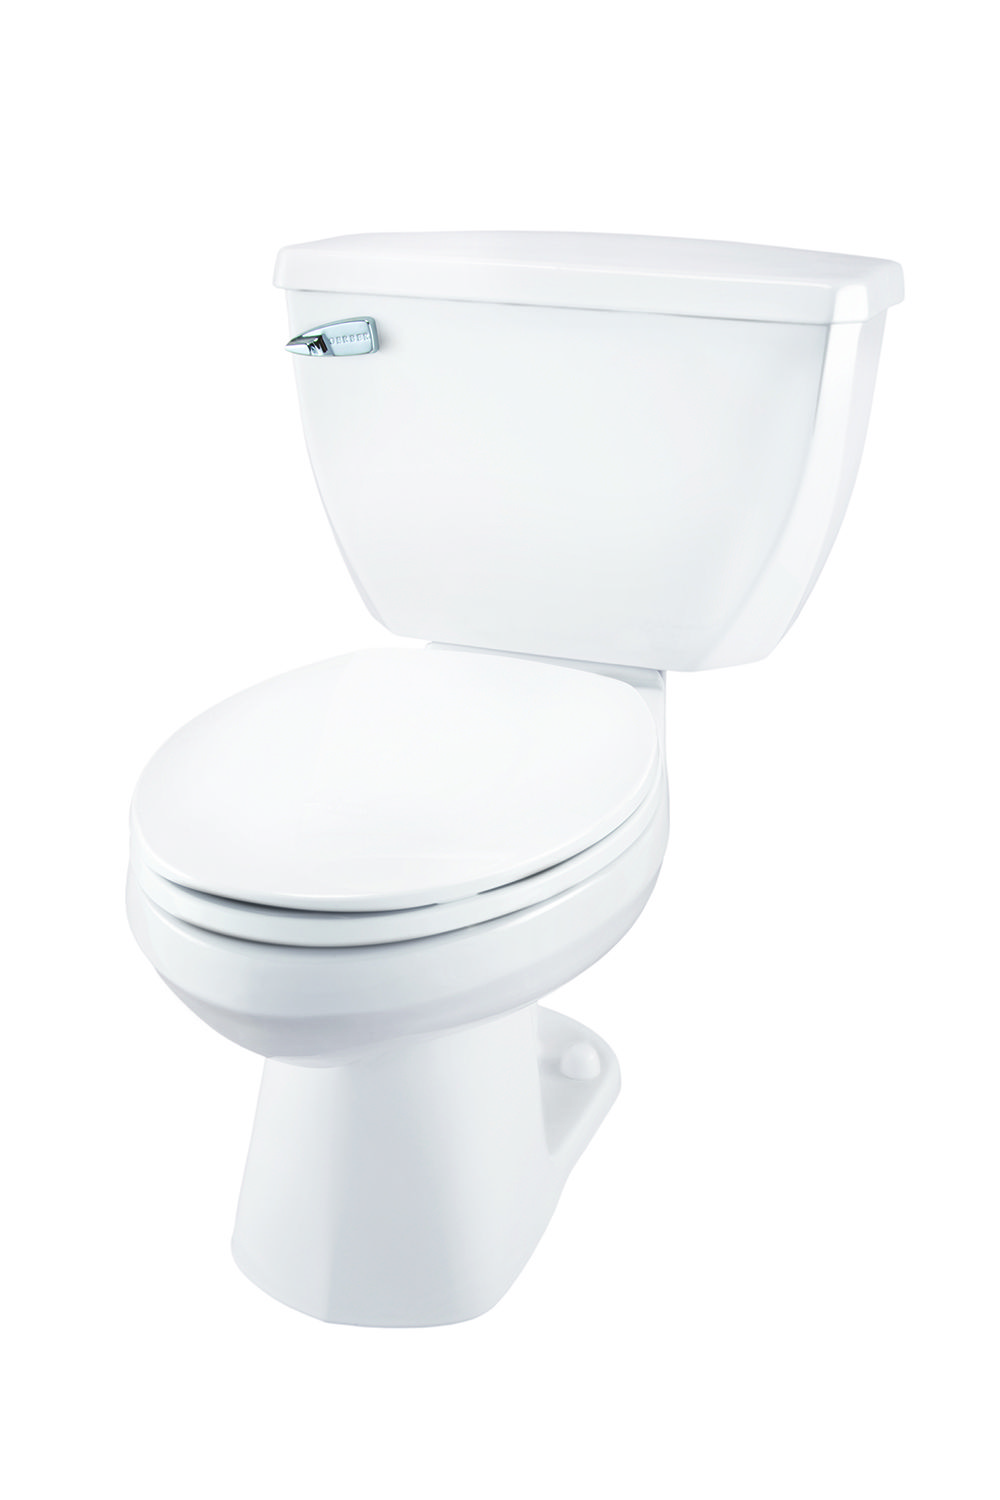 Viper 1 28 Gpf 10 Rough In Two Piece Elongated Toilet Gerber Plumbing Elongated Toilet Seat Old Closet Doors Toilet